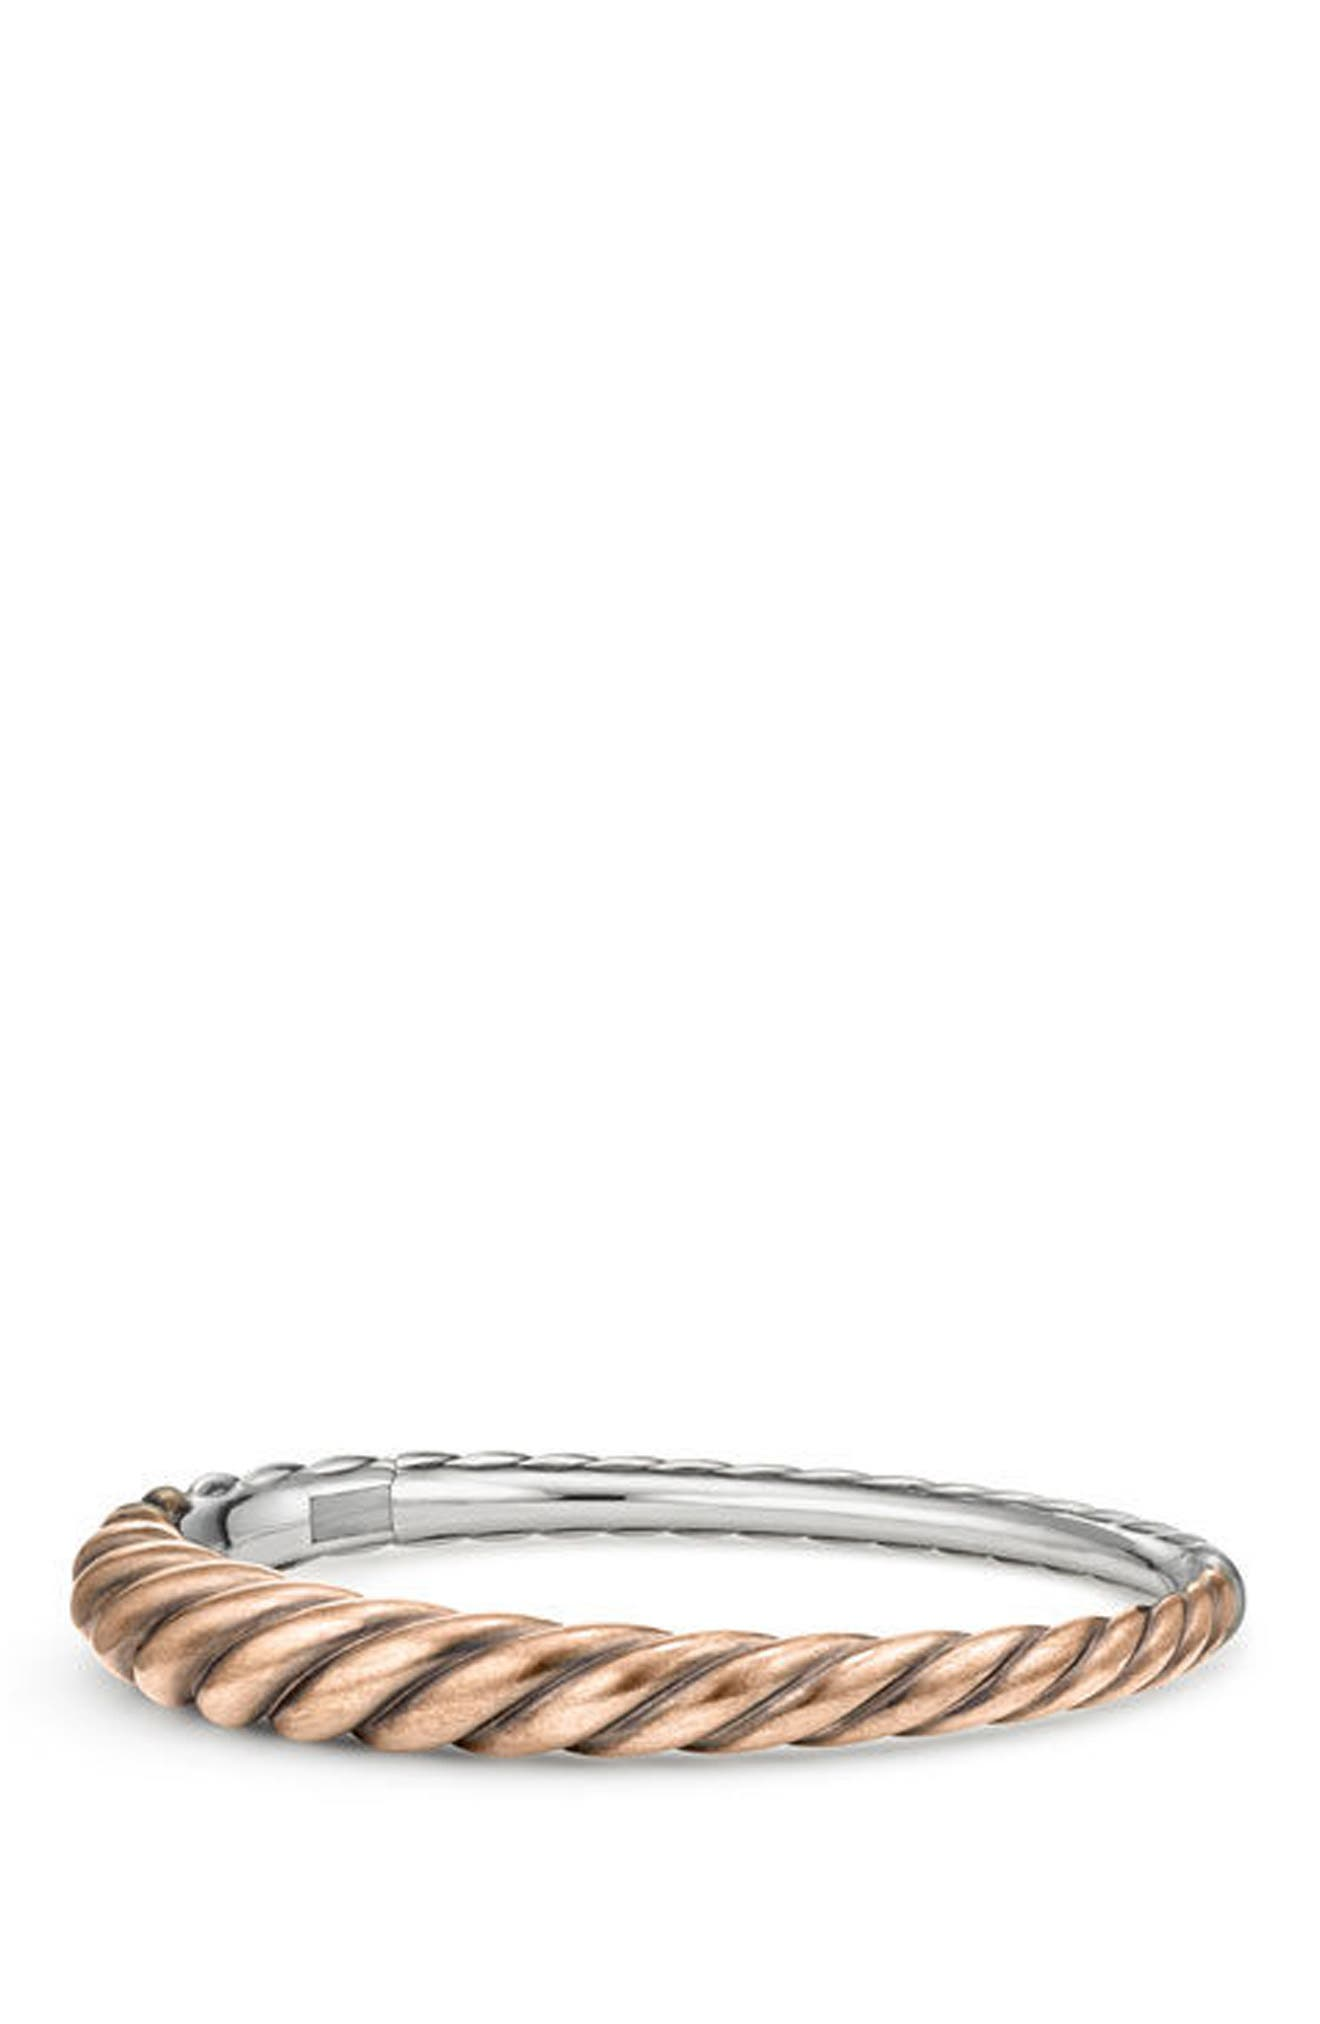 Main Image - David Yurman Pure Form Mixed Metal Cable Bracelet with Bronze and Silver, 9.5mm